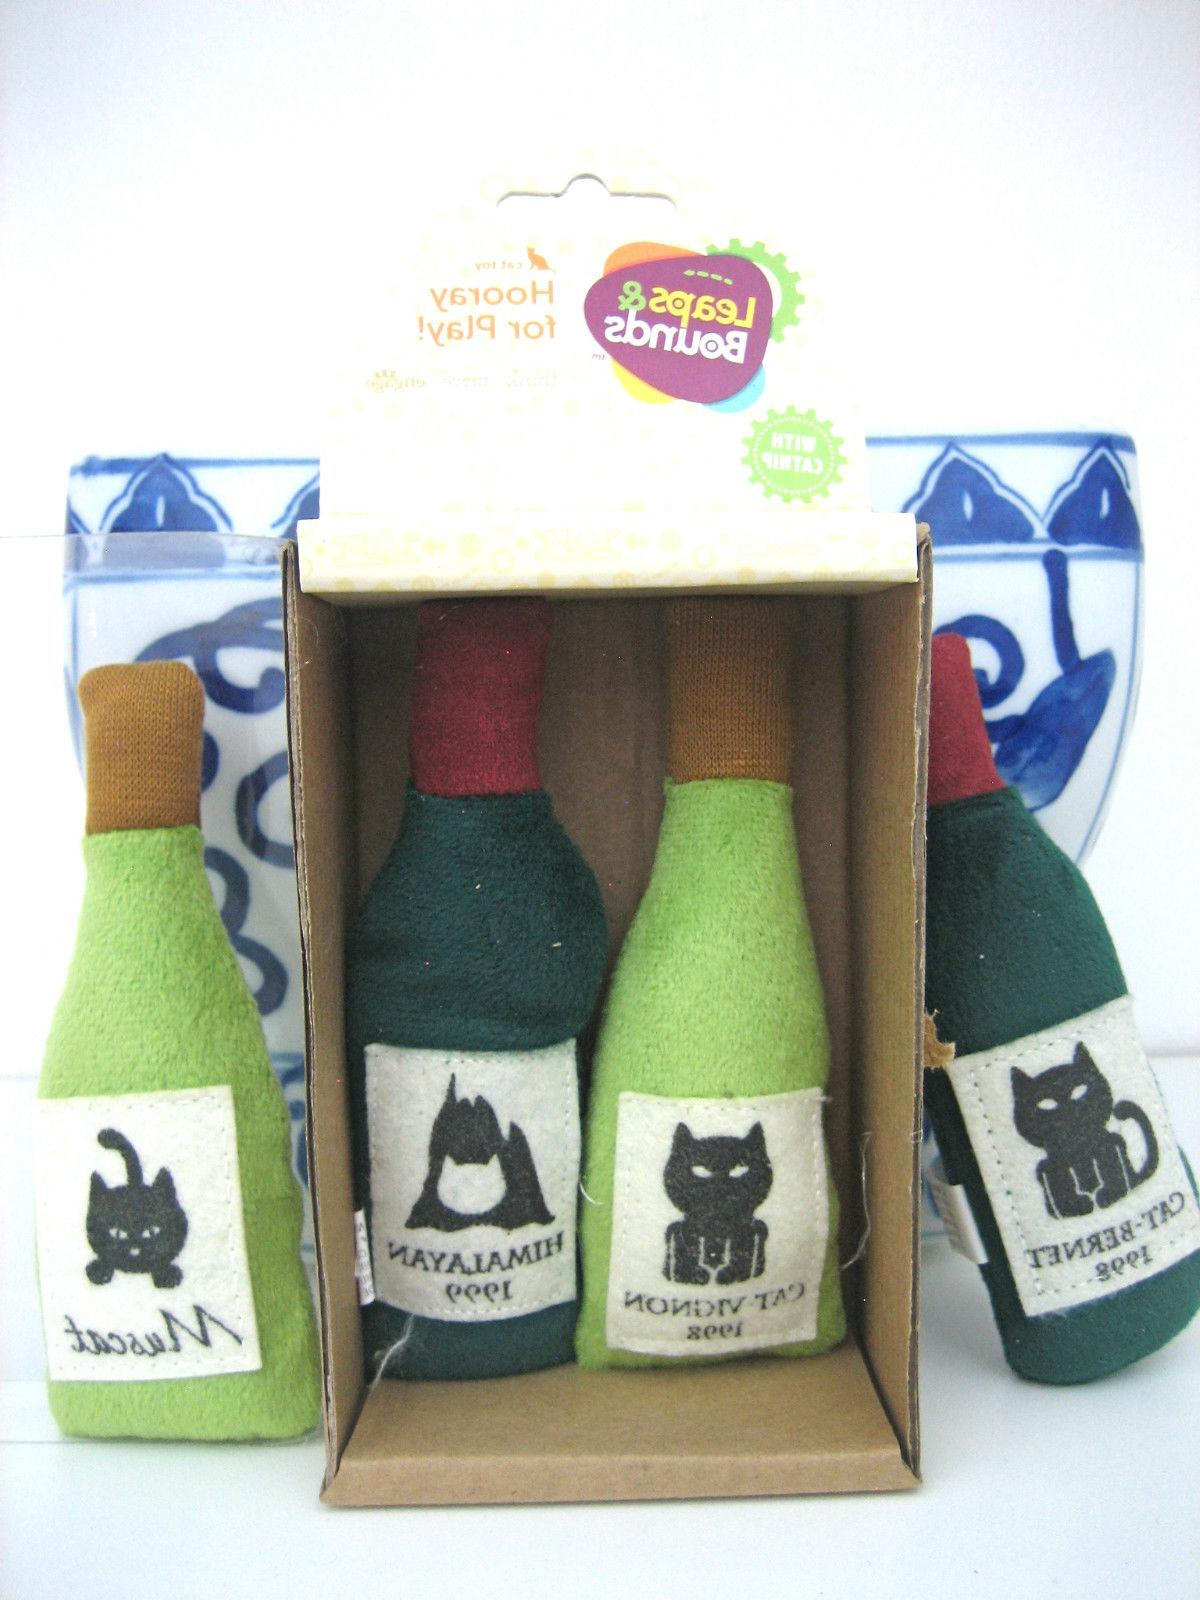 CAT TOYS CATNIP WINE BOTTLES Leaps and Bounds CATBERNET MUSC